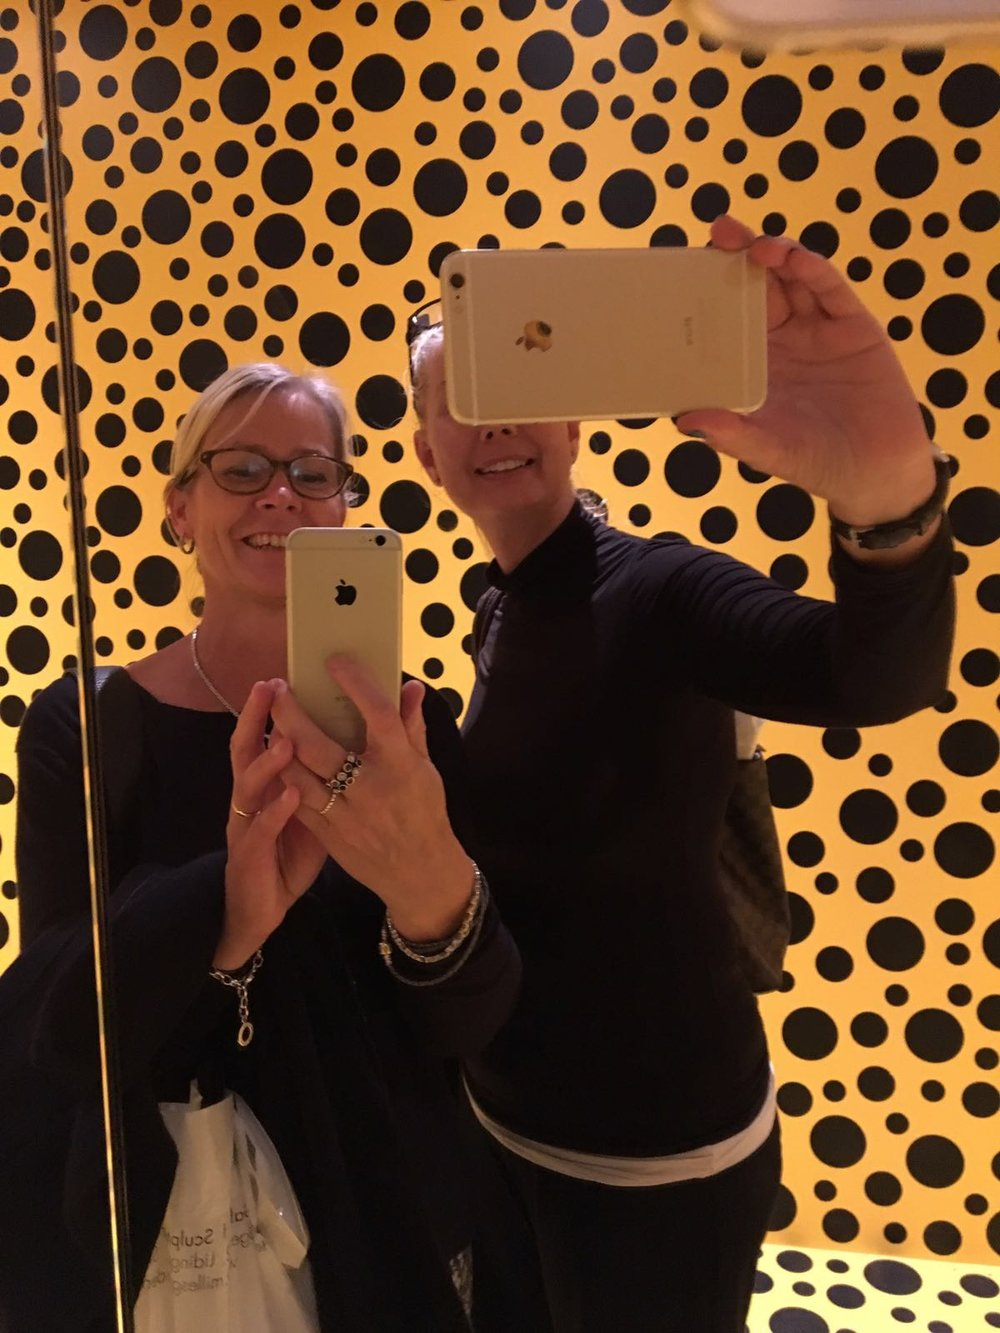 Gunnel and me in one of Yayoi Kusamas rooms, Moderna Museet 2016